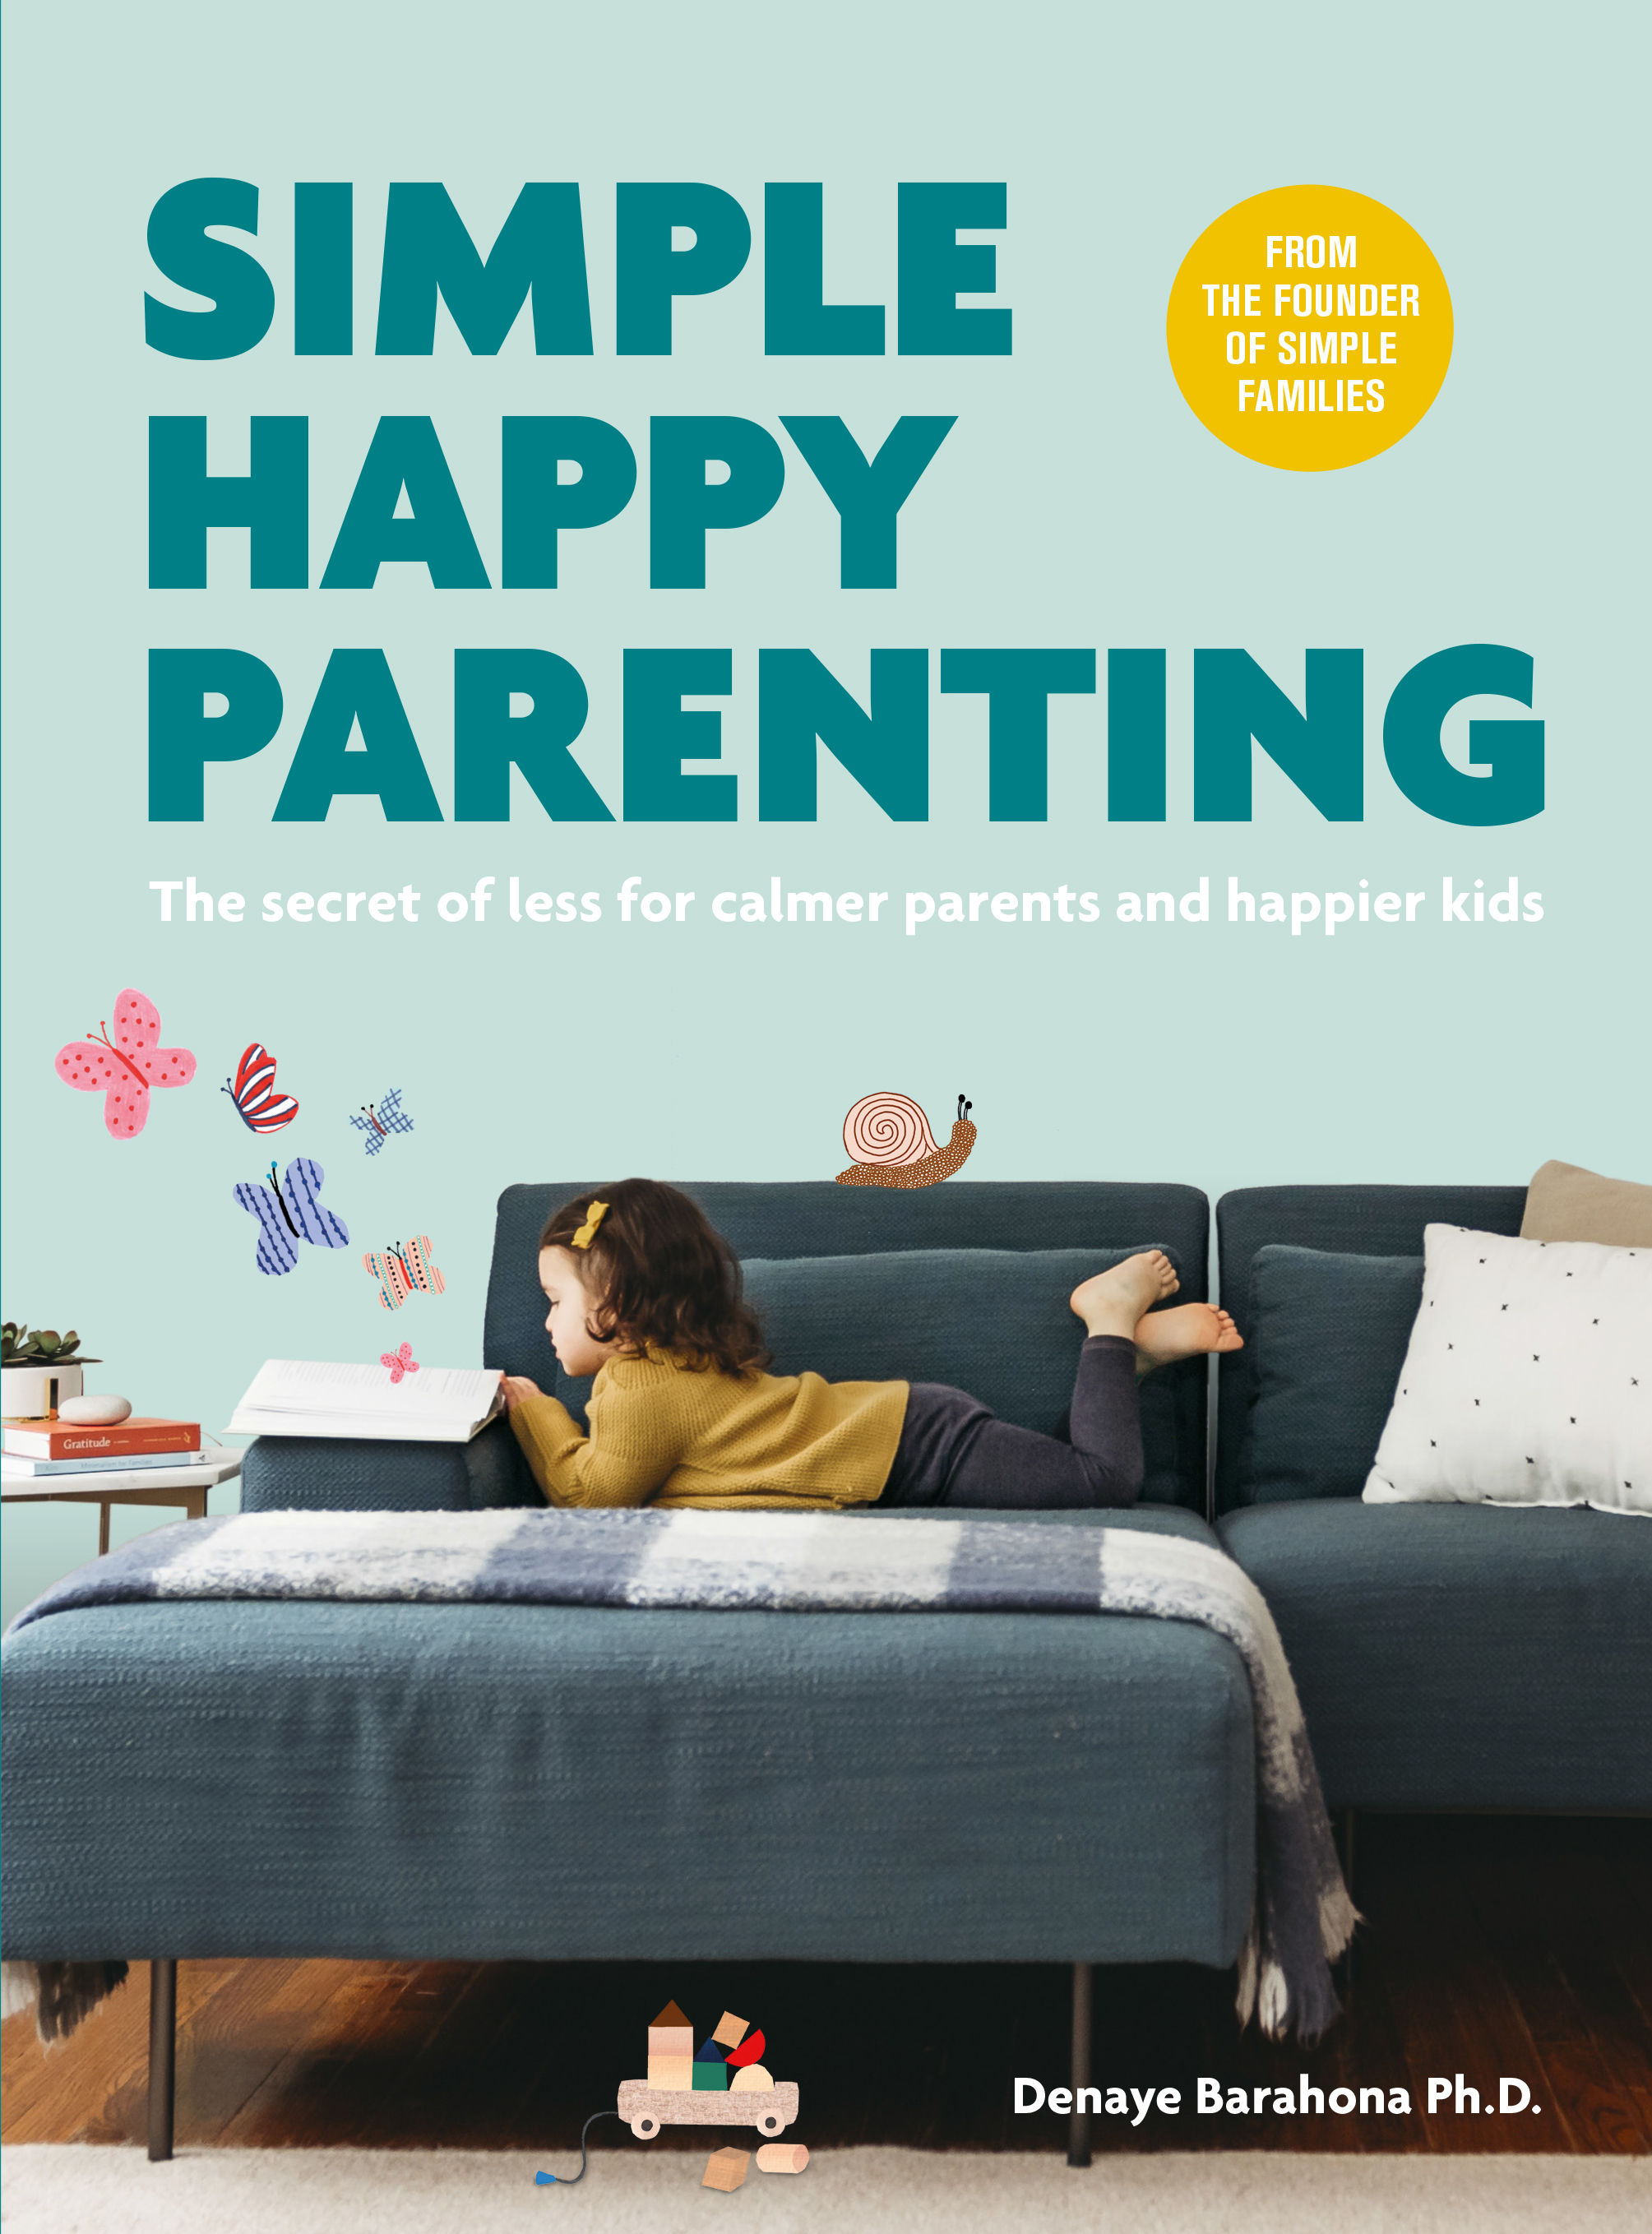 Simple Happy Parenting  by Denaye Barahona is available now.